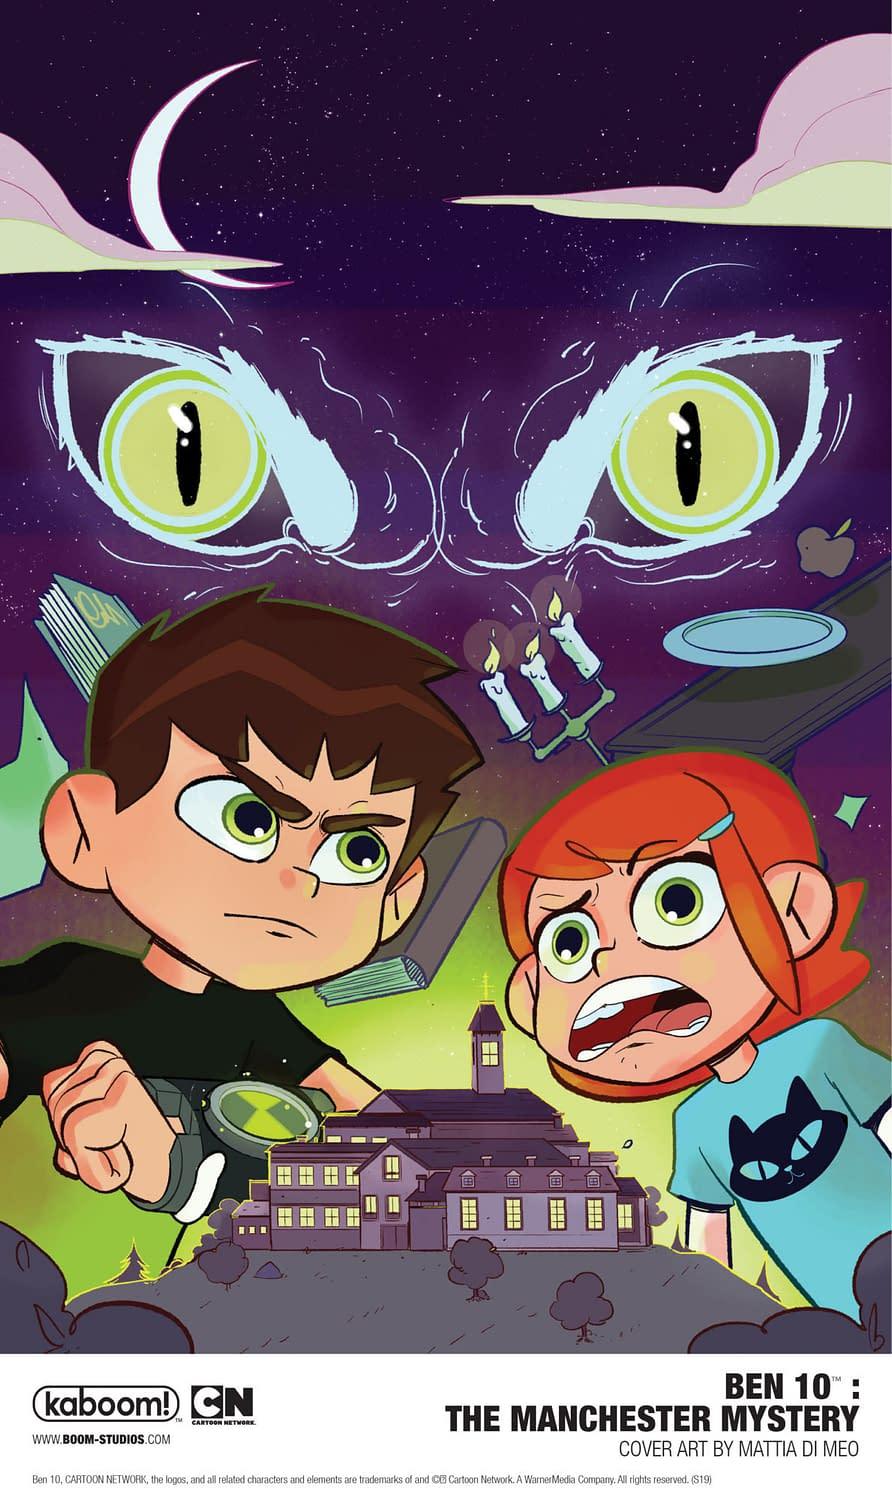 Manchester Mystery: Another Ben 10 OGN for 2020